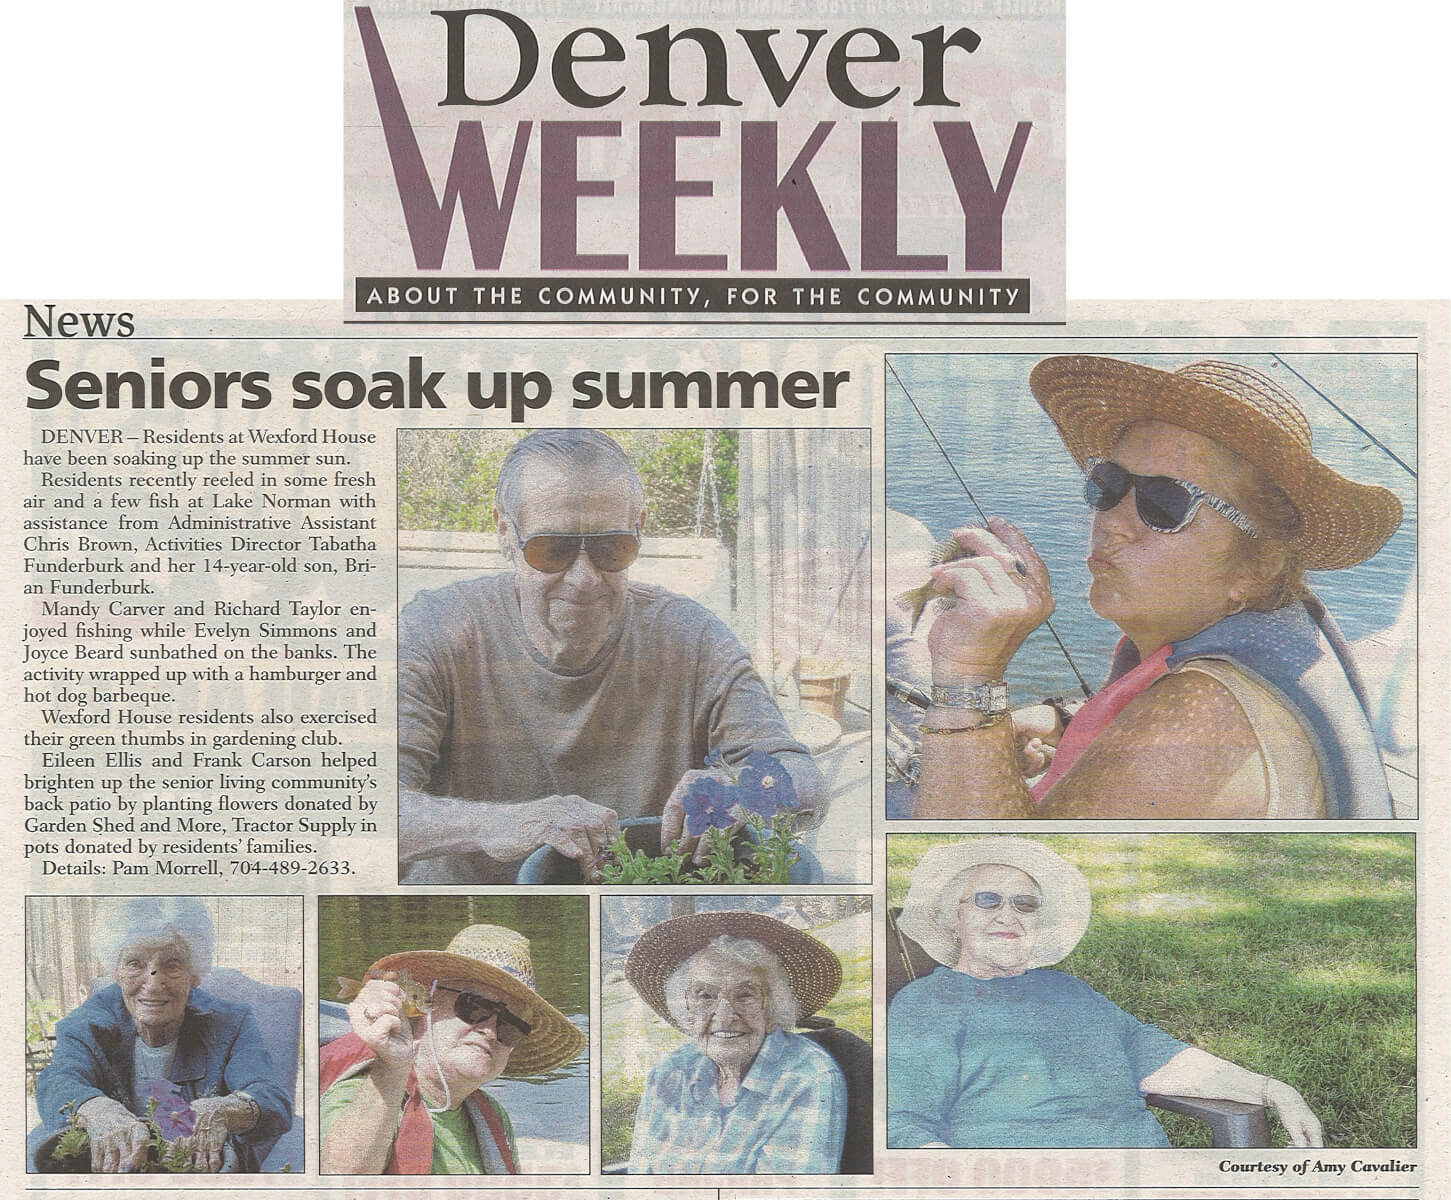 Wexford House Assisted Living Soakin' Up Summer article in the Denver Weekly July 2014